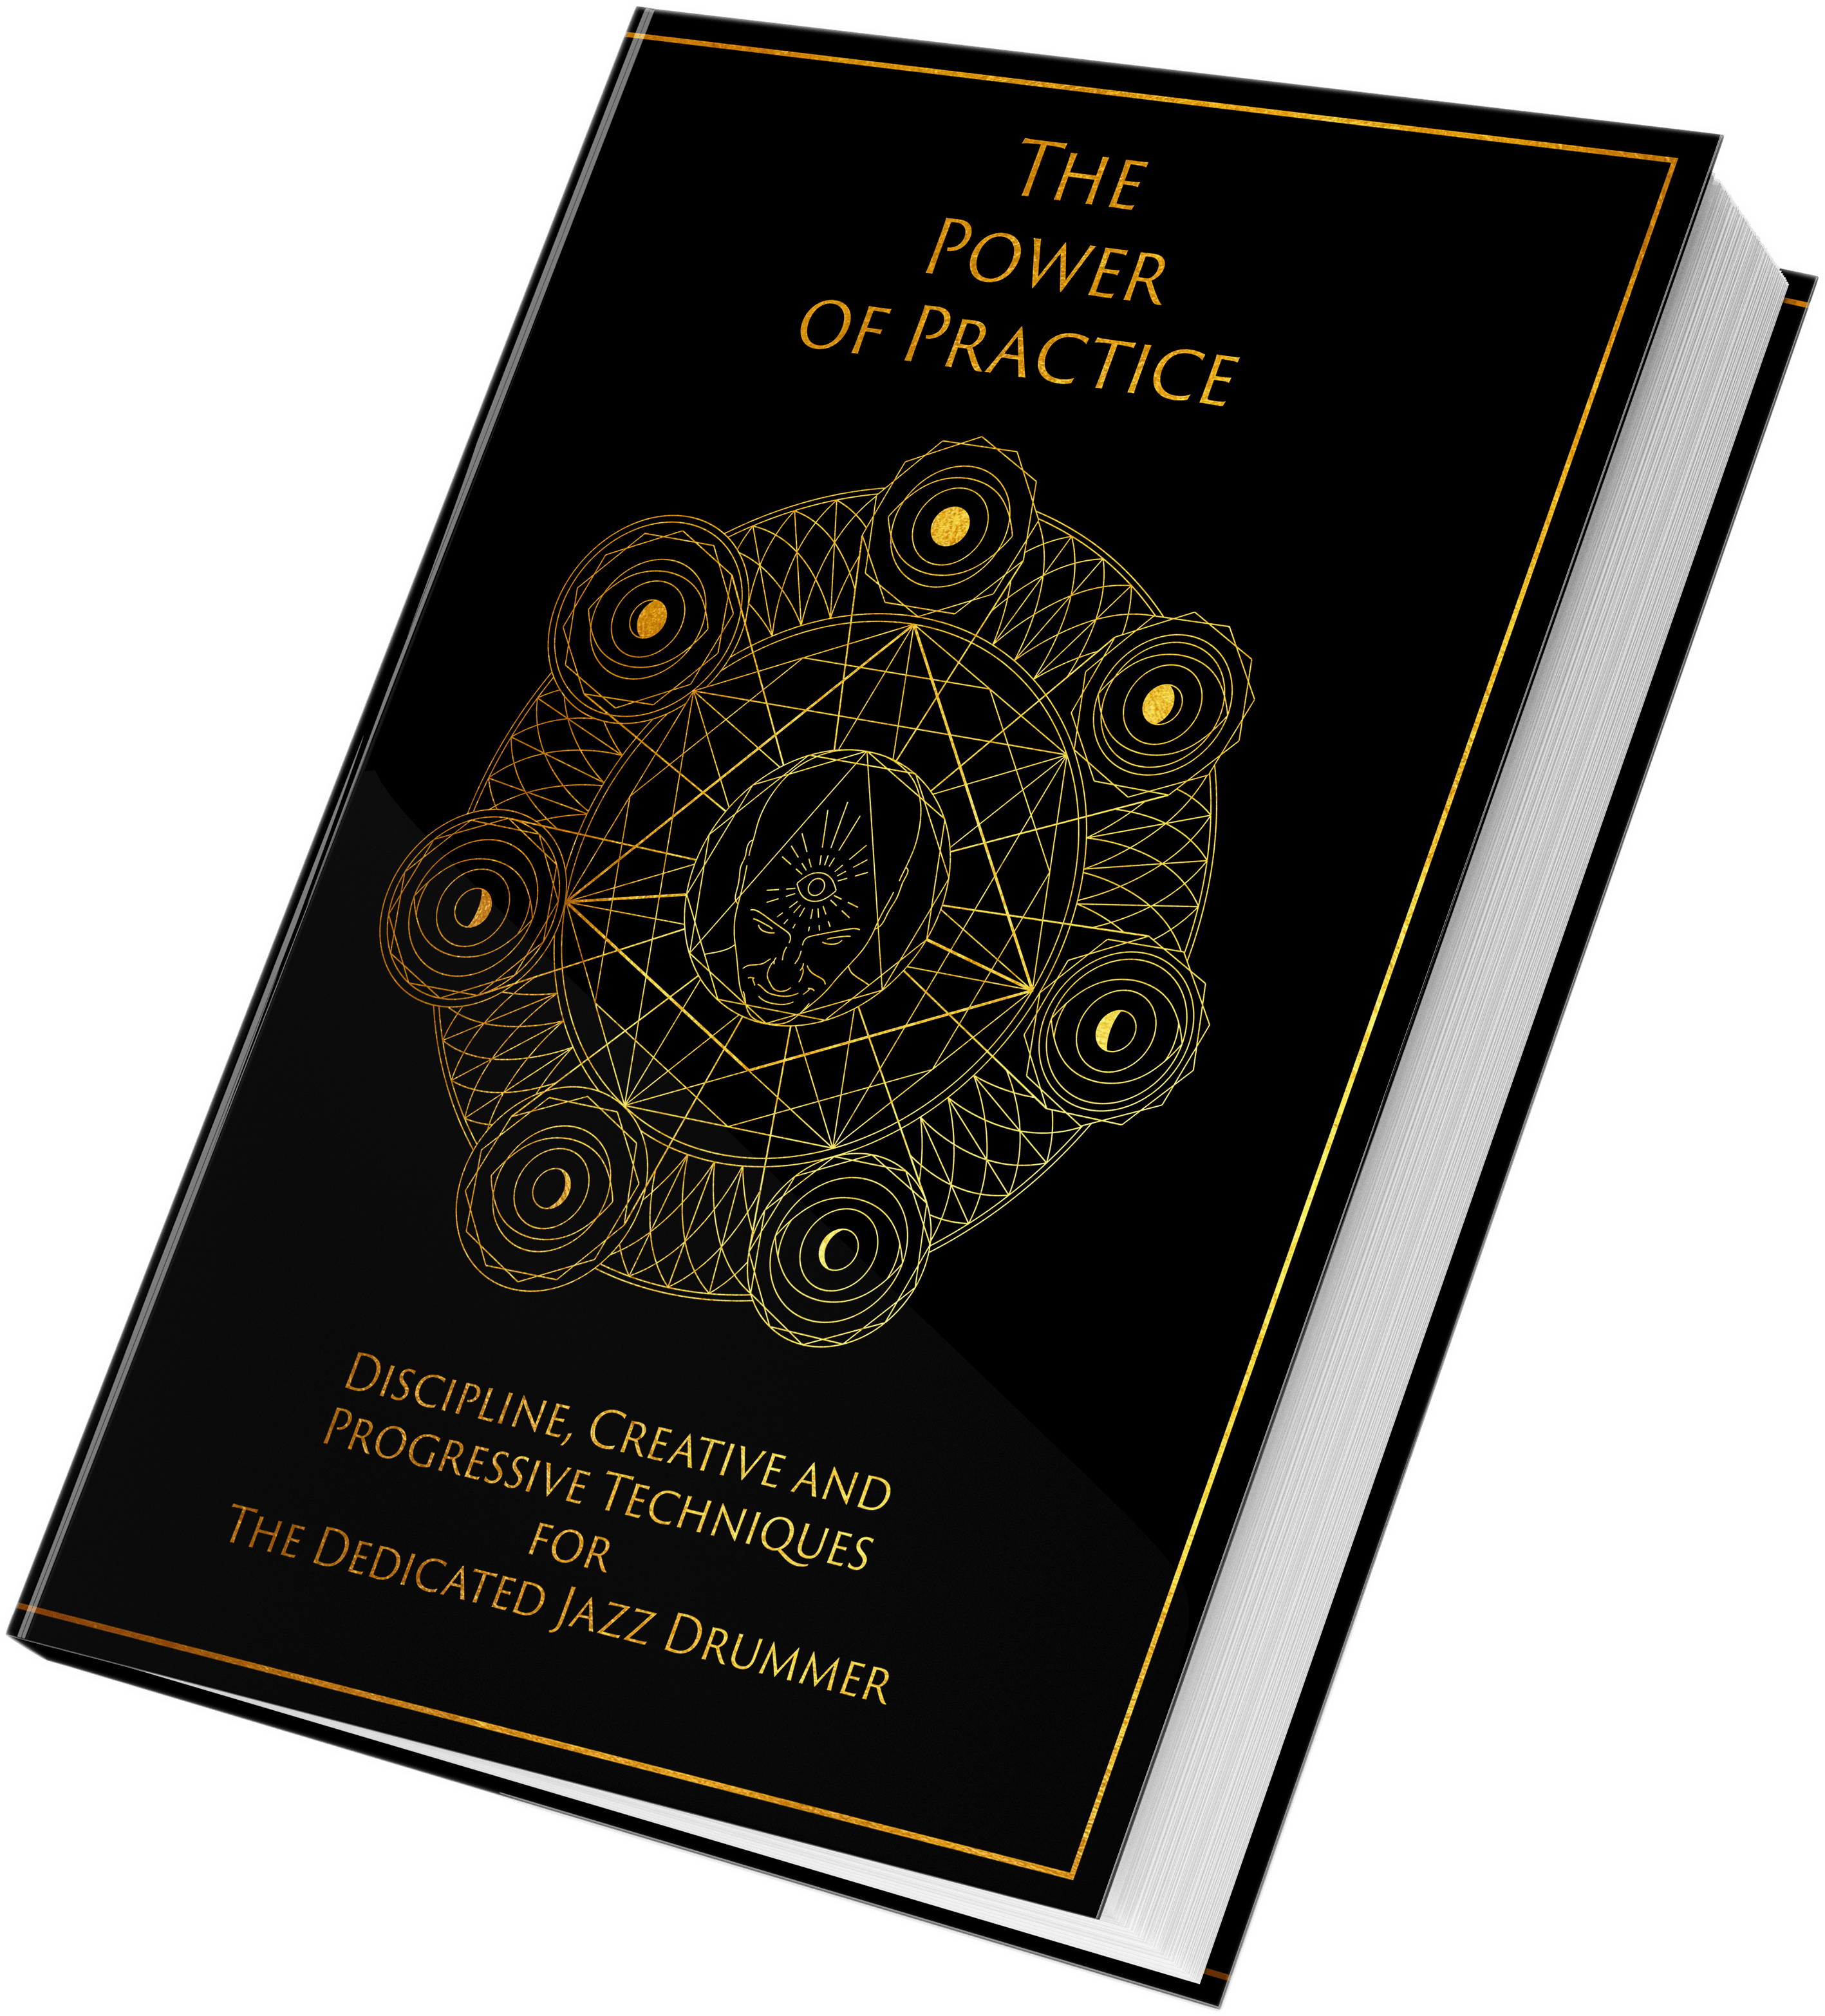 The Power of Practice Book